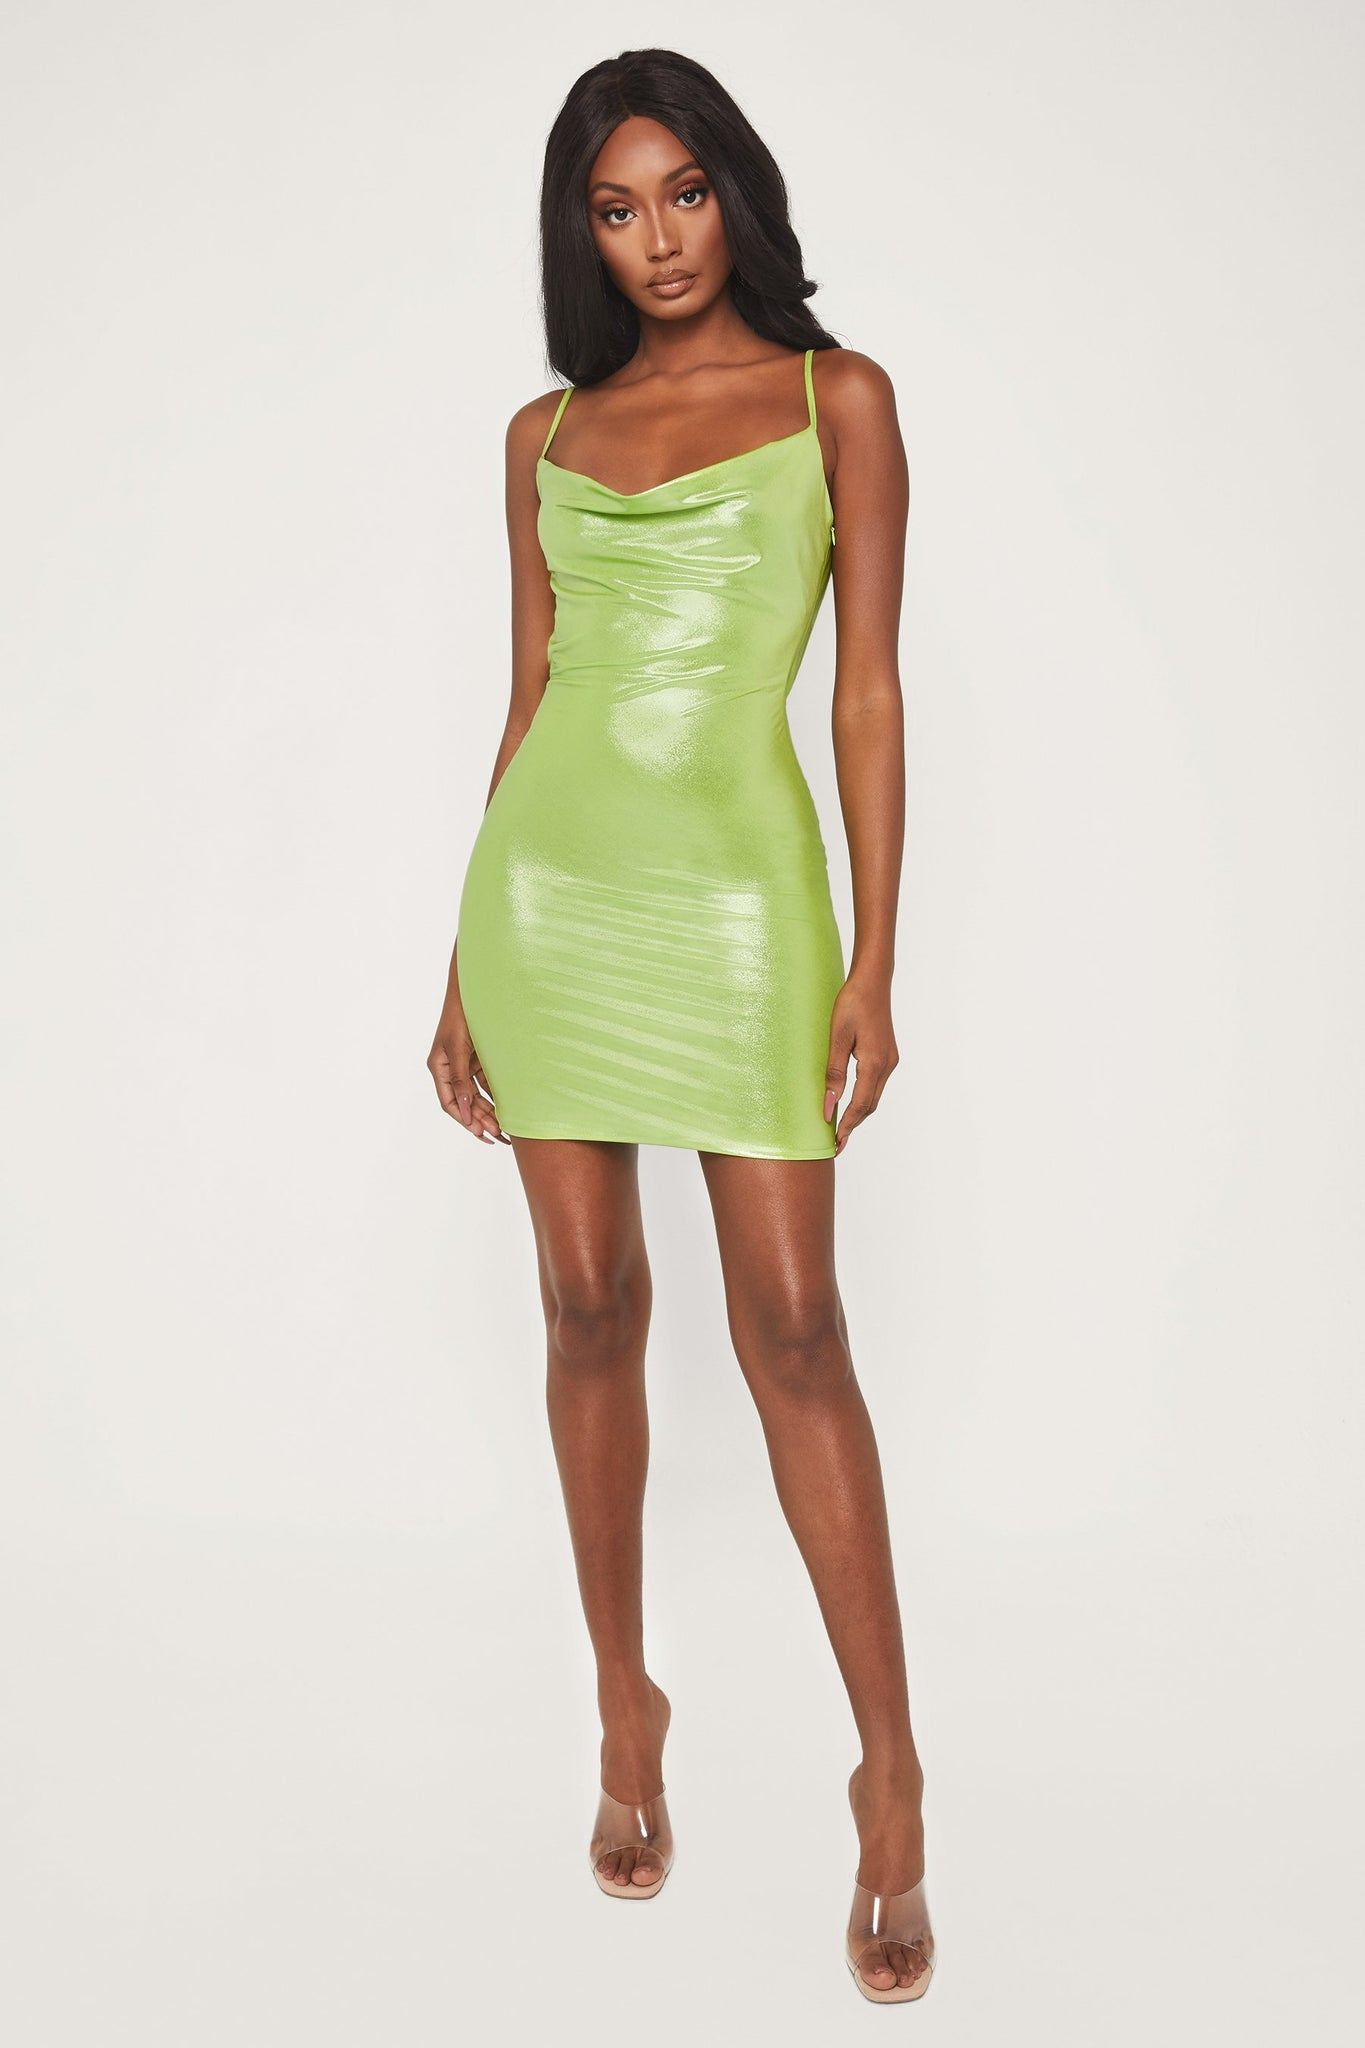 Kalia Cowl Neck Mini Dress - Lime Green - MESHKI